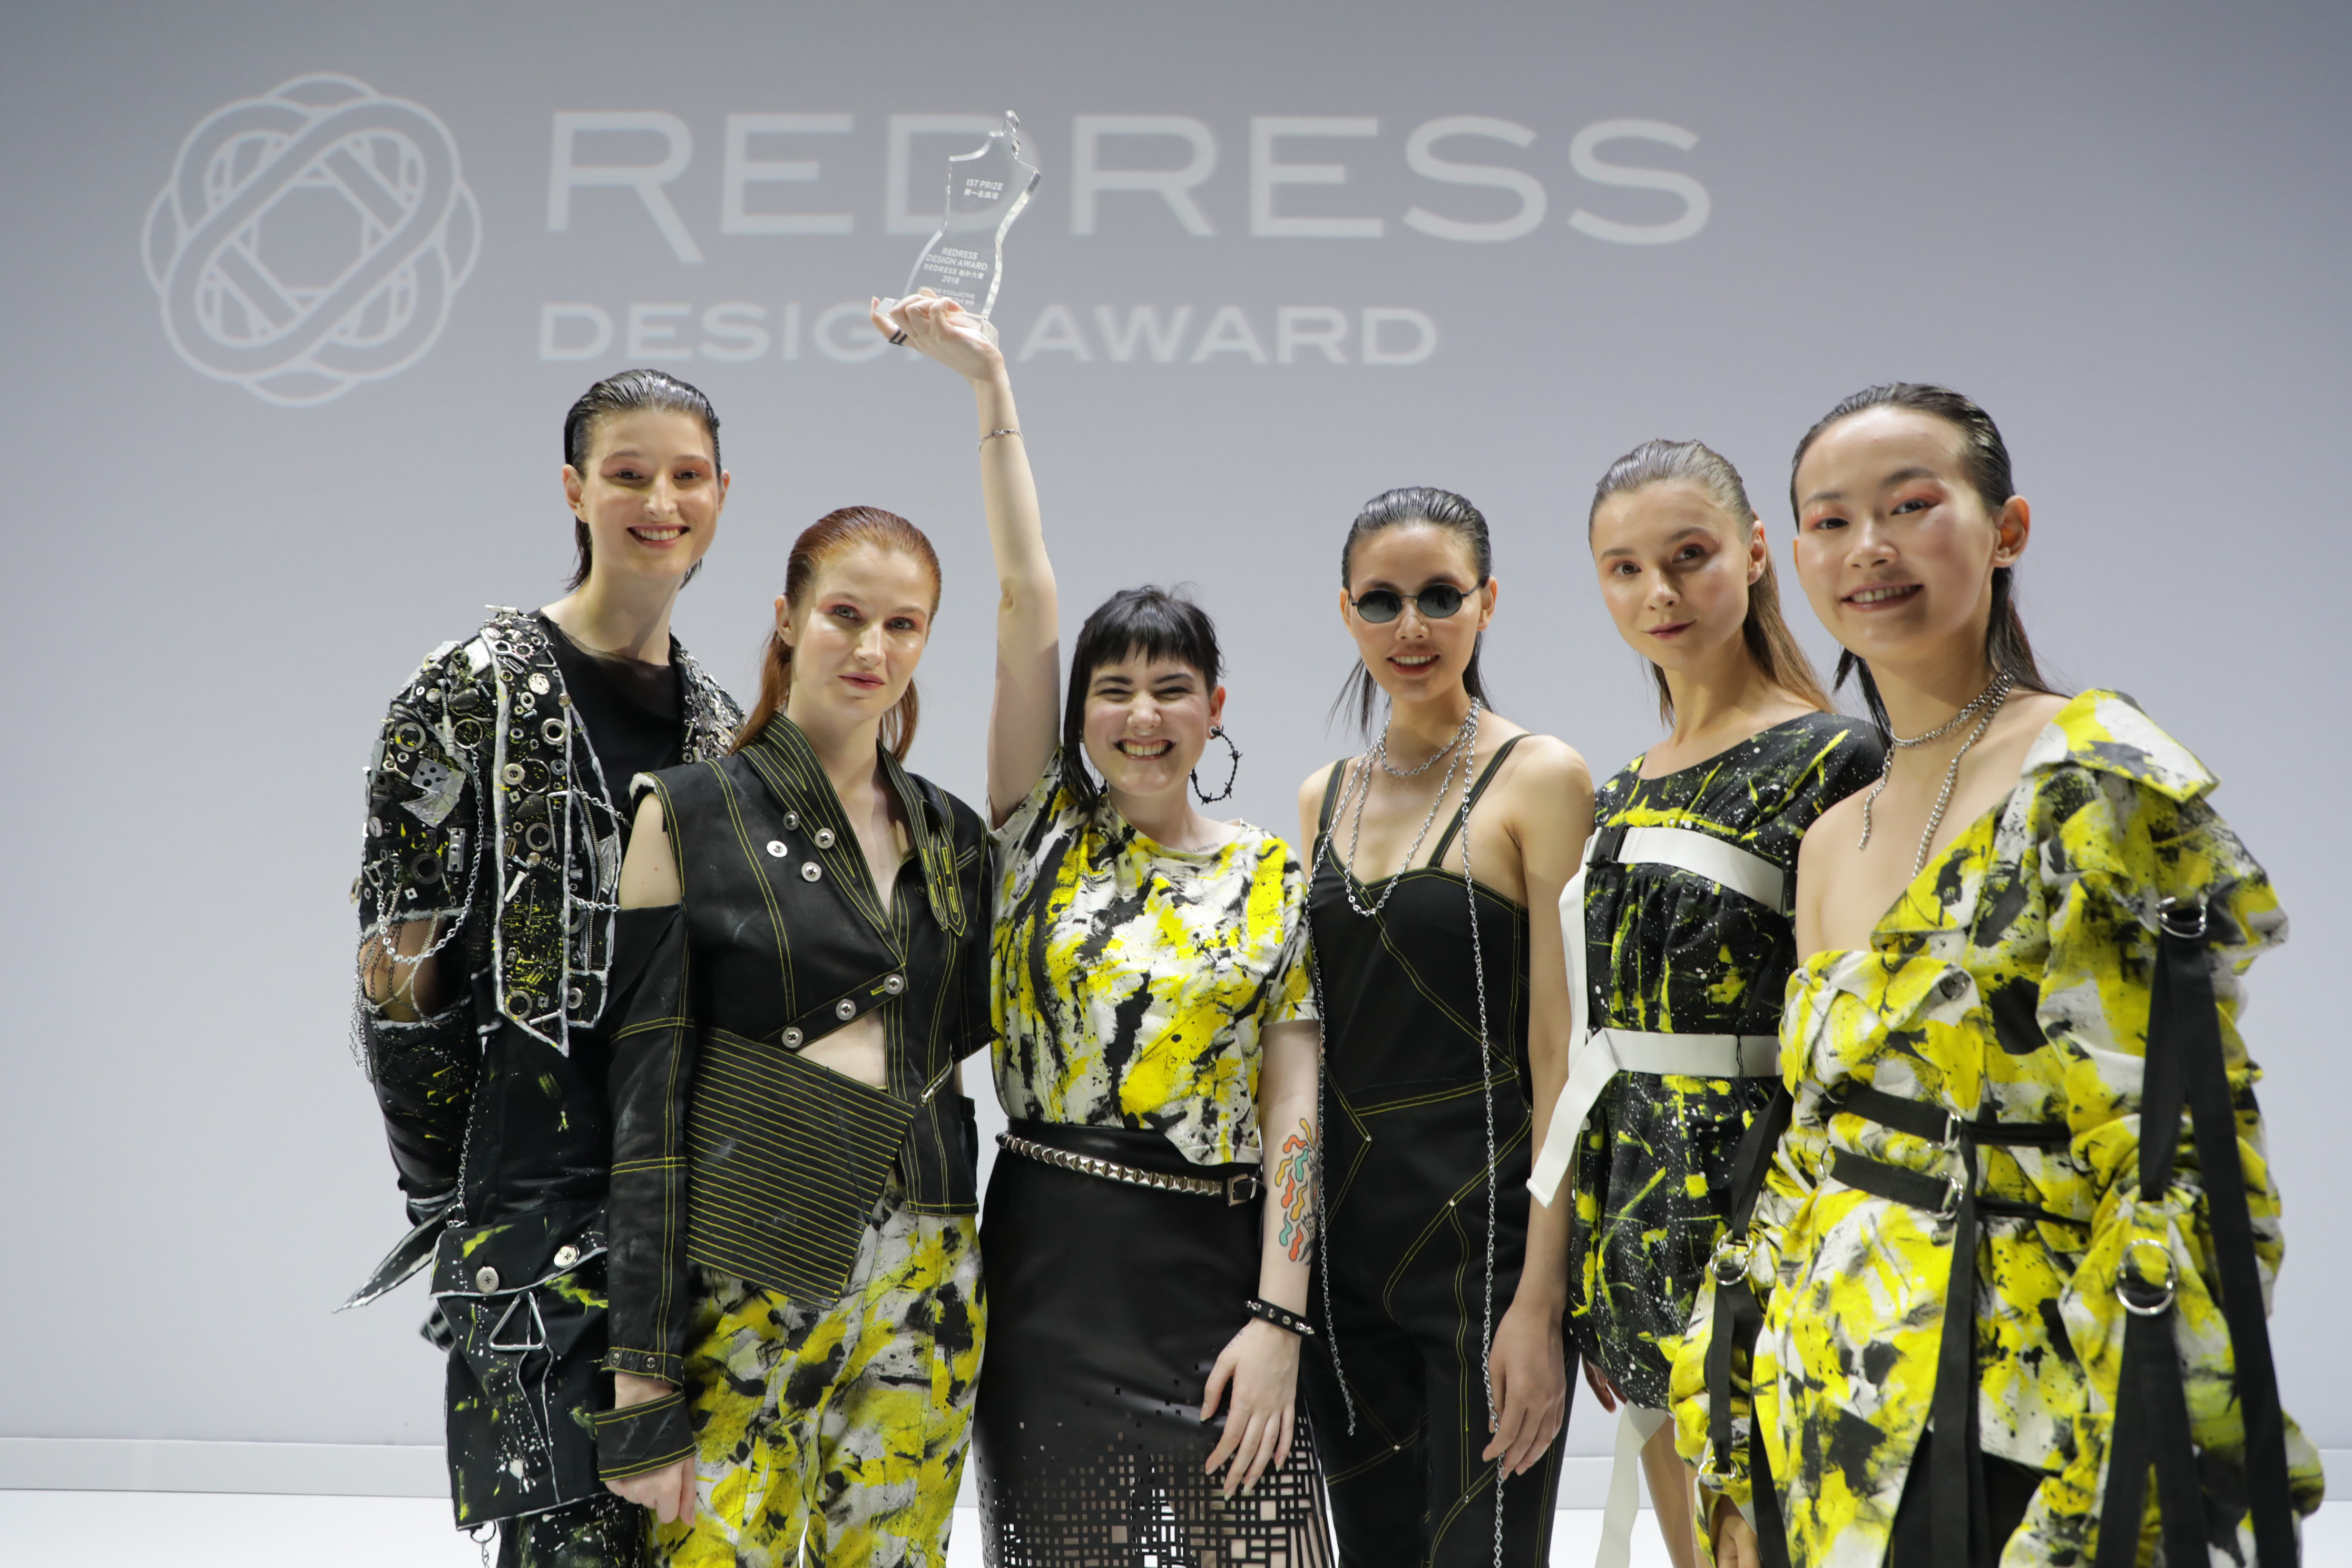 Australian designer Tess Whitfort took home first prize in 2018